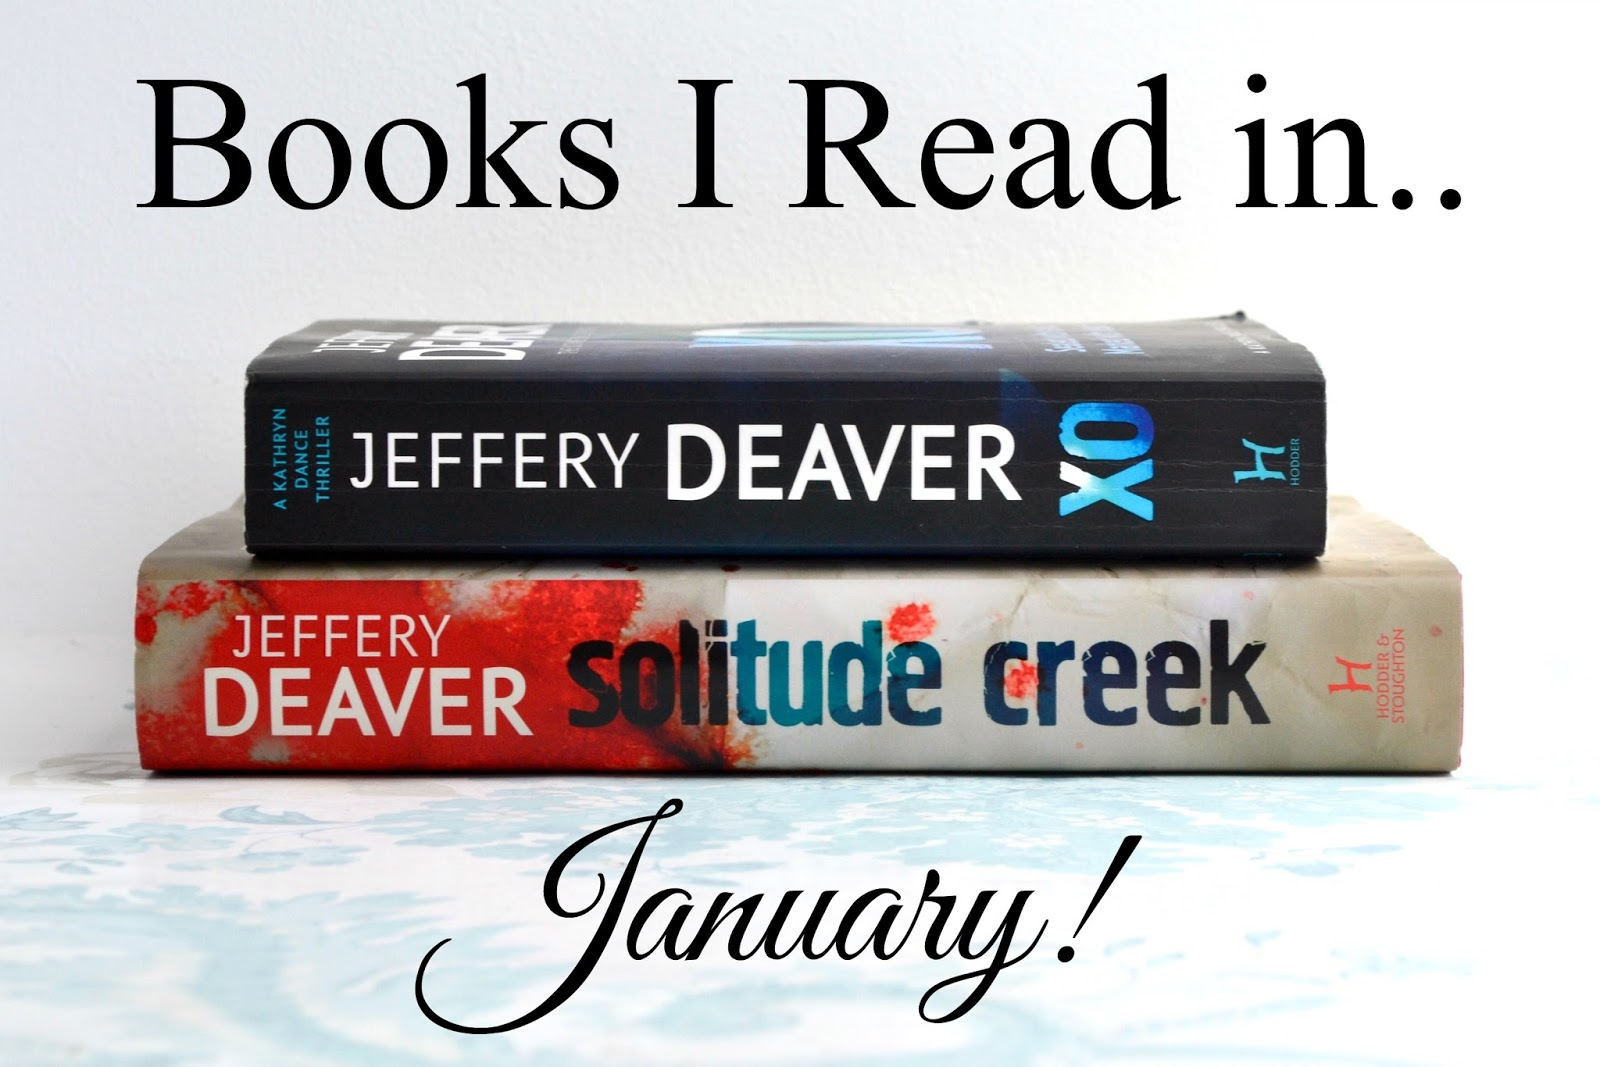 The books I read in January; XO and Solitude Creek by Jeffery Deaver!